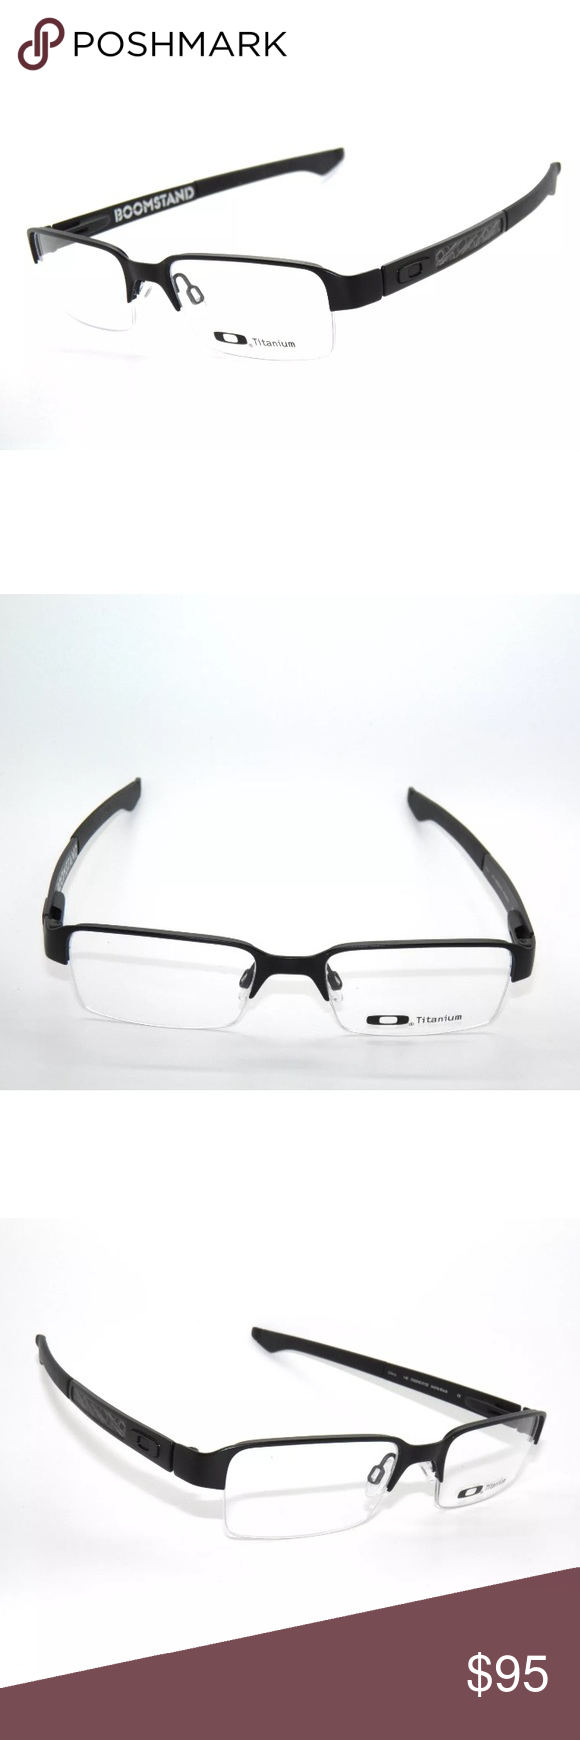 d38297654bc Oakley Boomstand Price « One More Soul